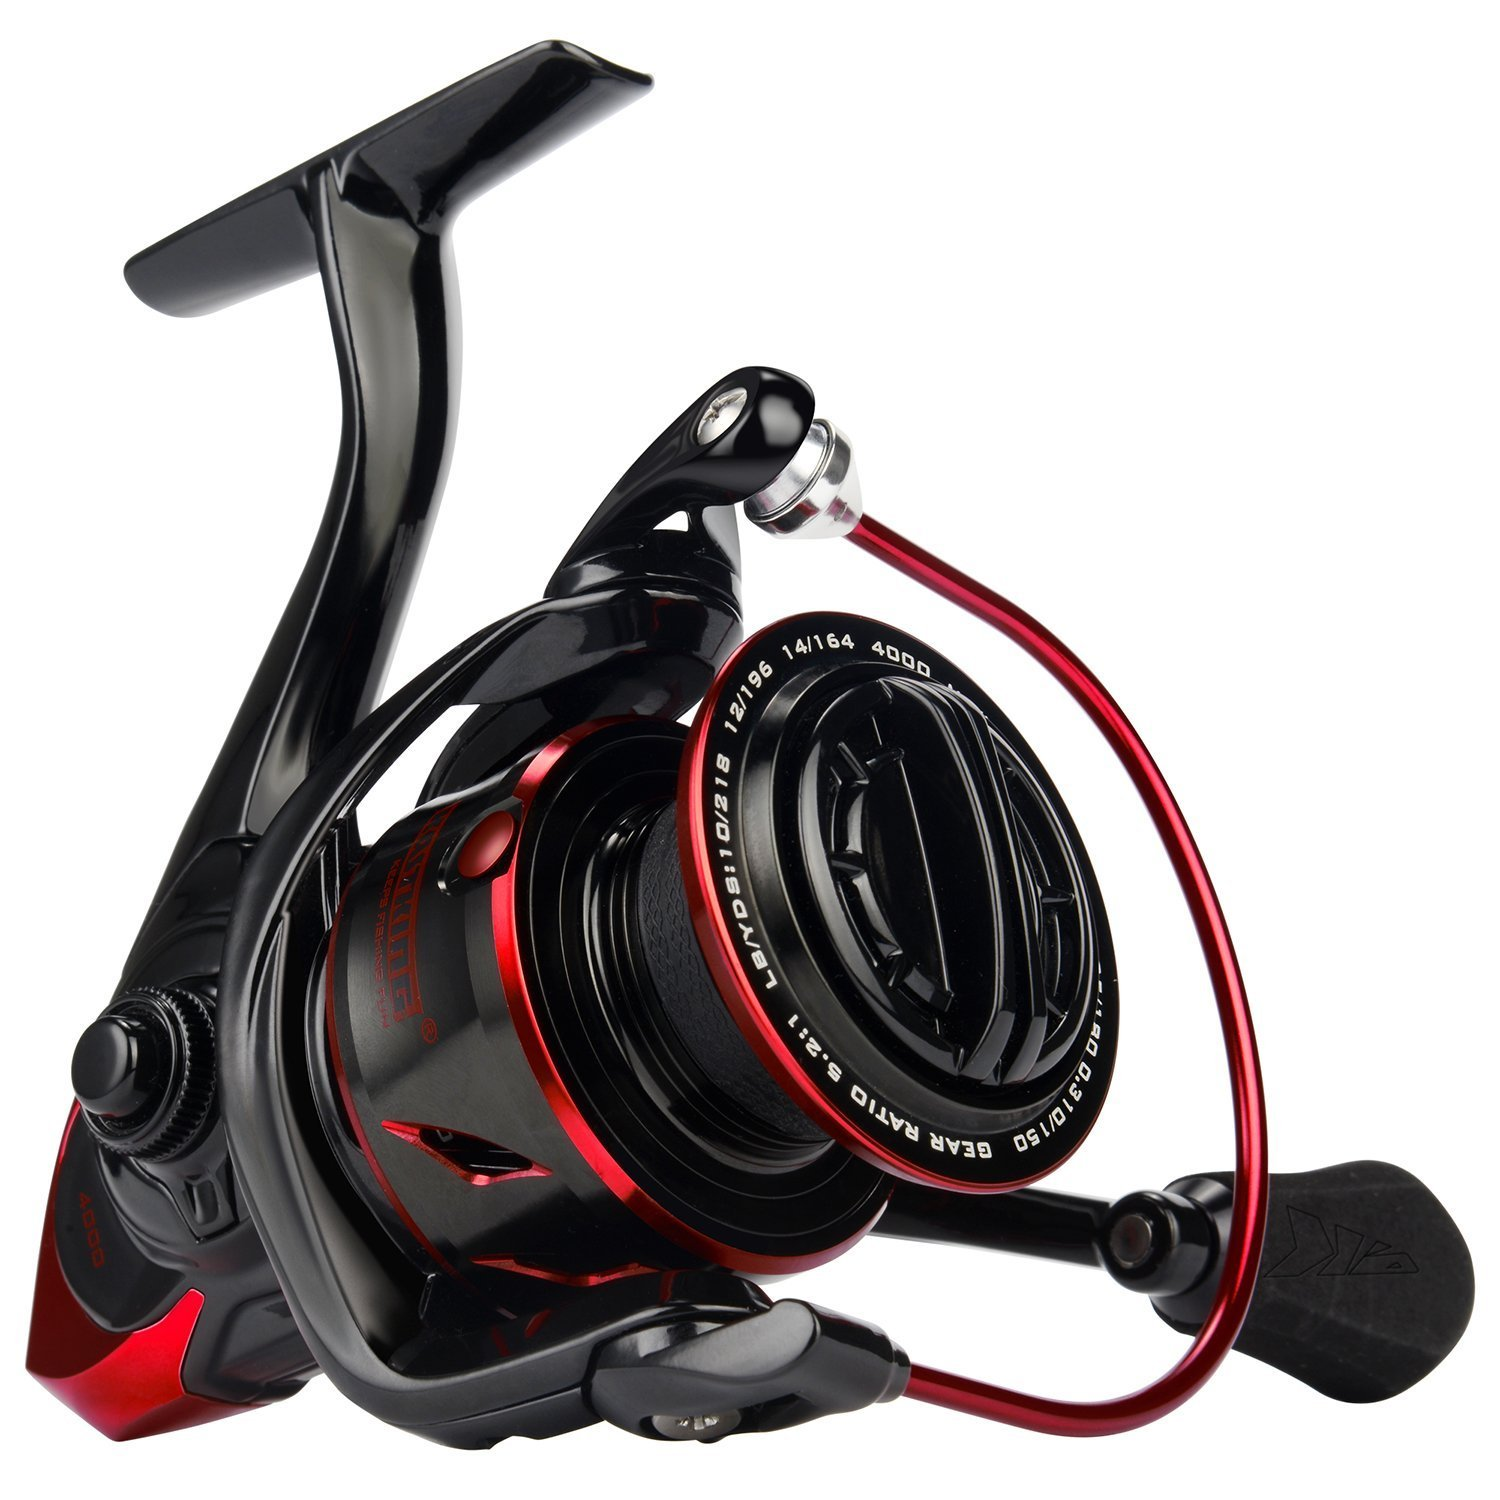 KastKing Sharky III Fishing Reel - New Spinning Reel - Carbon Fiber 39.5 LBs Max Drag - 10+1 Stainless BB for Saltwater or Freshwater - Oversize Shaft